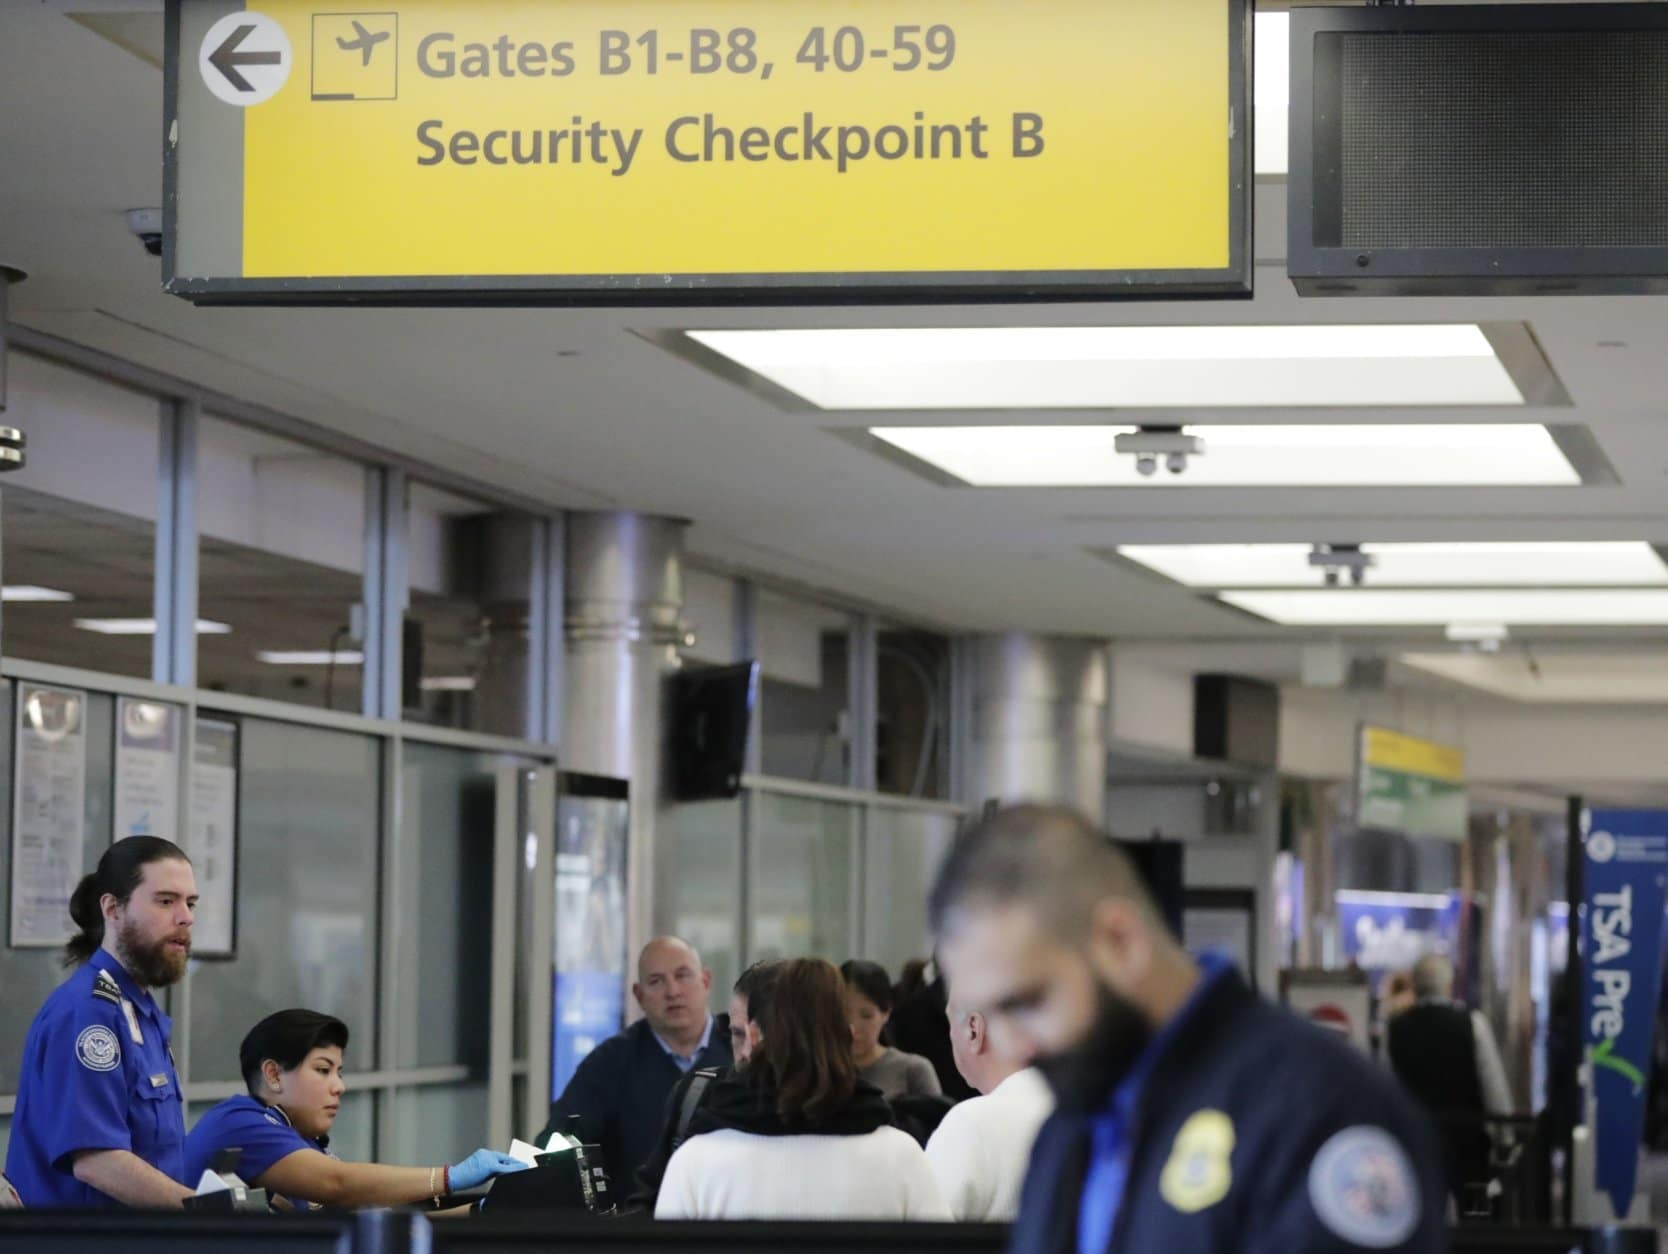 Passengers stand in line as they wait to pass through a Transportation Security Administration checkpoint at LaGuardia airport Monday, Jan. 7, 2019, in New York. (AP Photo/Frank Franklin II)